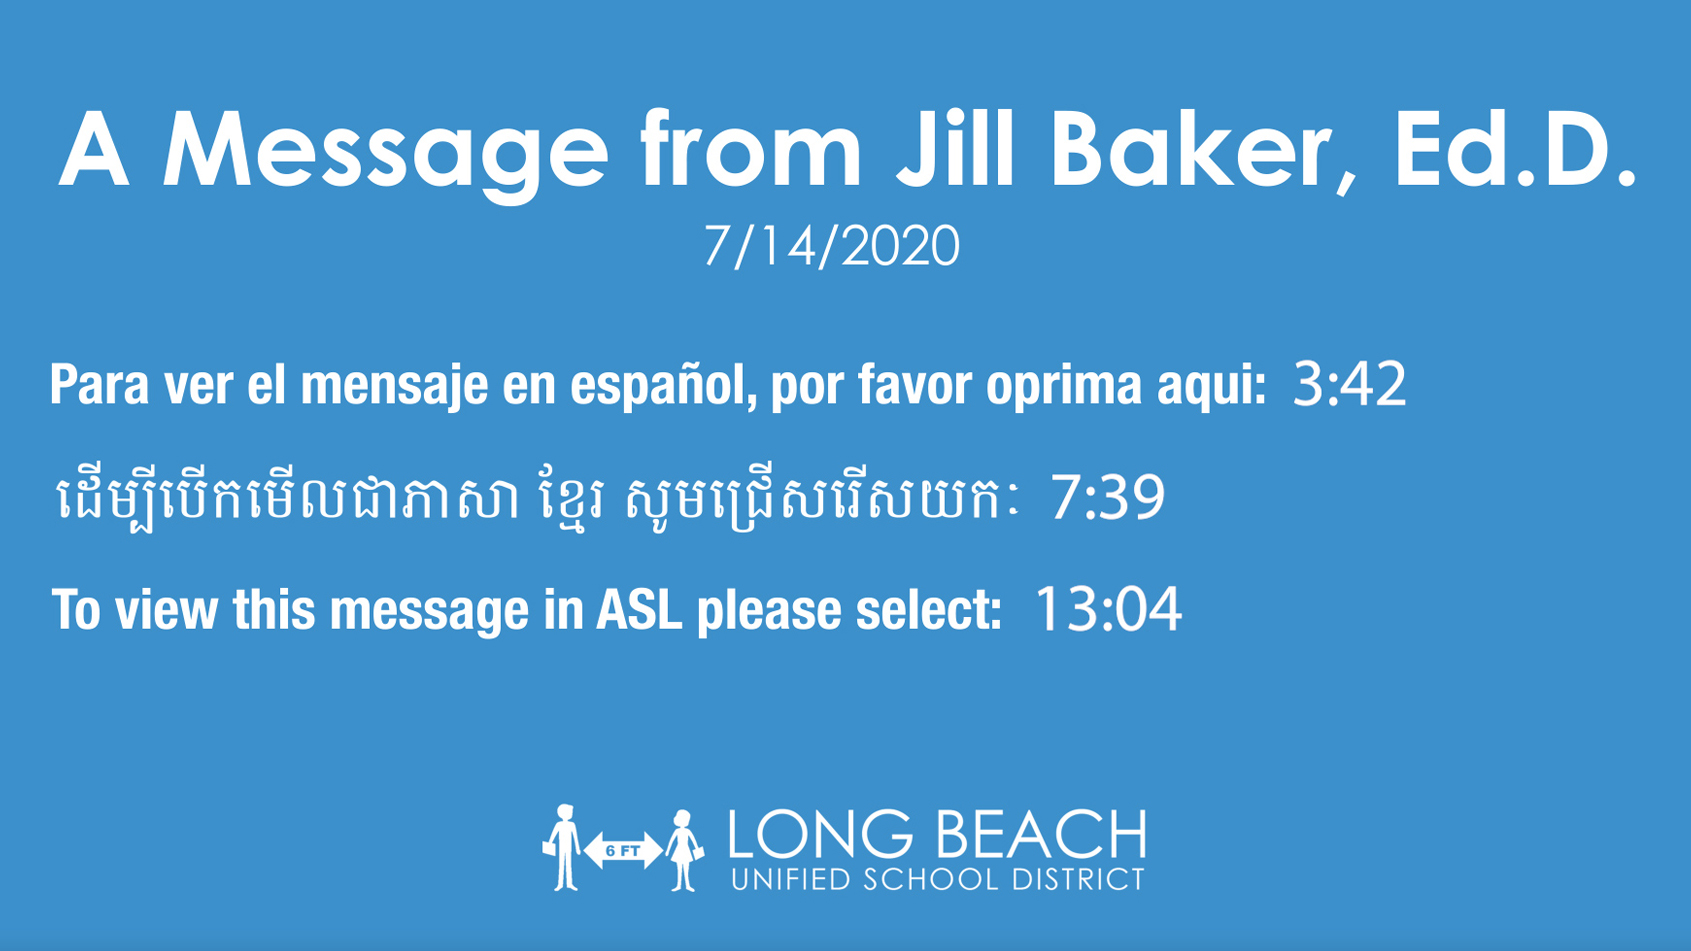 July 14th, 2020 - A Message from Jill Baker - Video